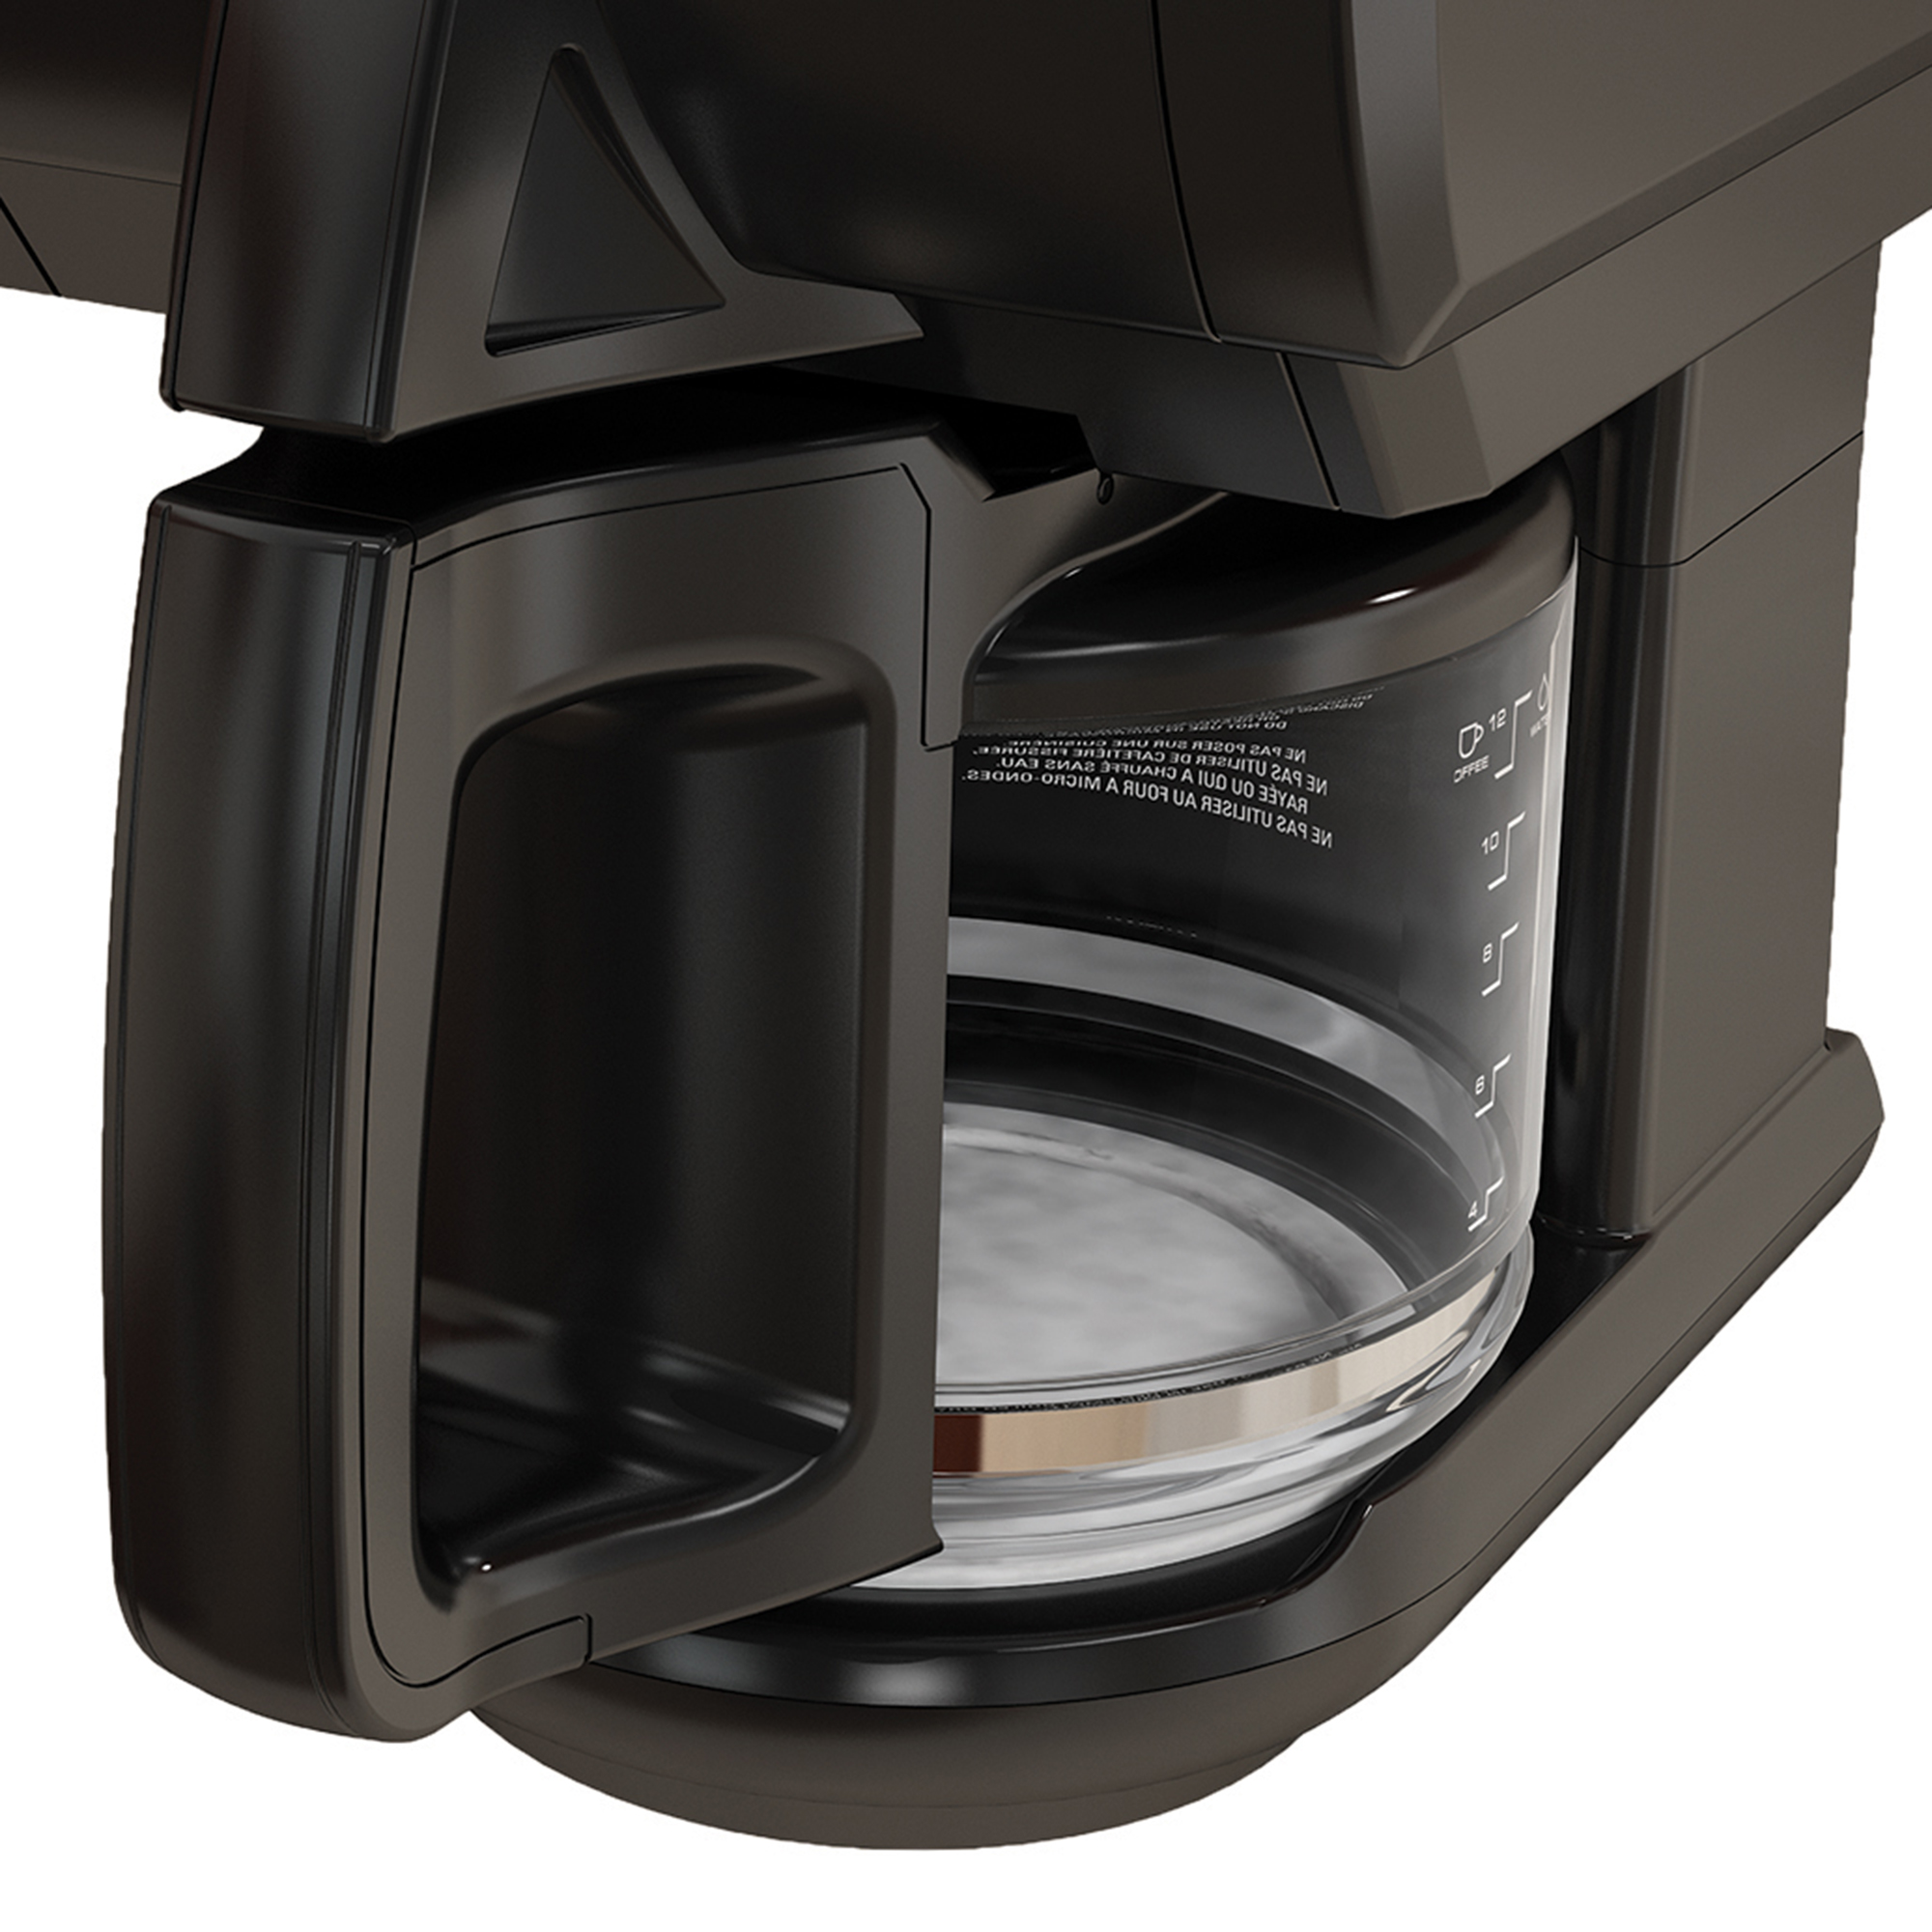 Ge Coffee Maker Instructions : Black And Decker Spacemaker Coffee Maker Small Appliances Home Design Idea